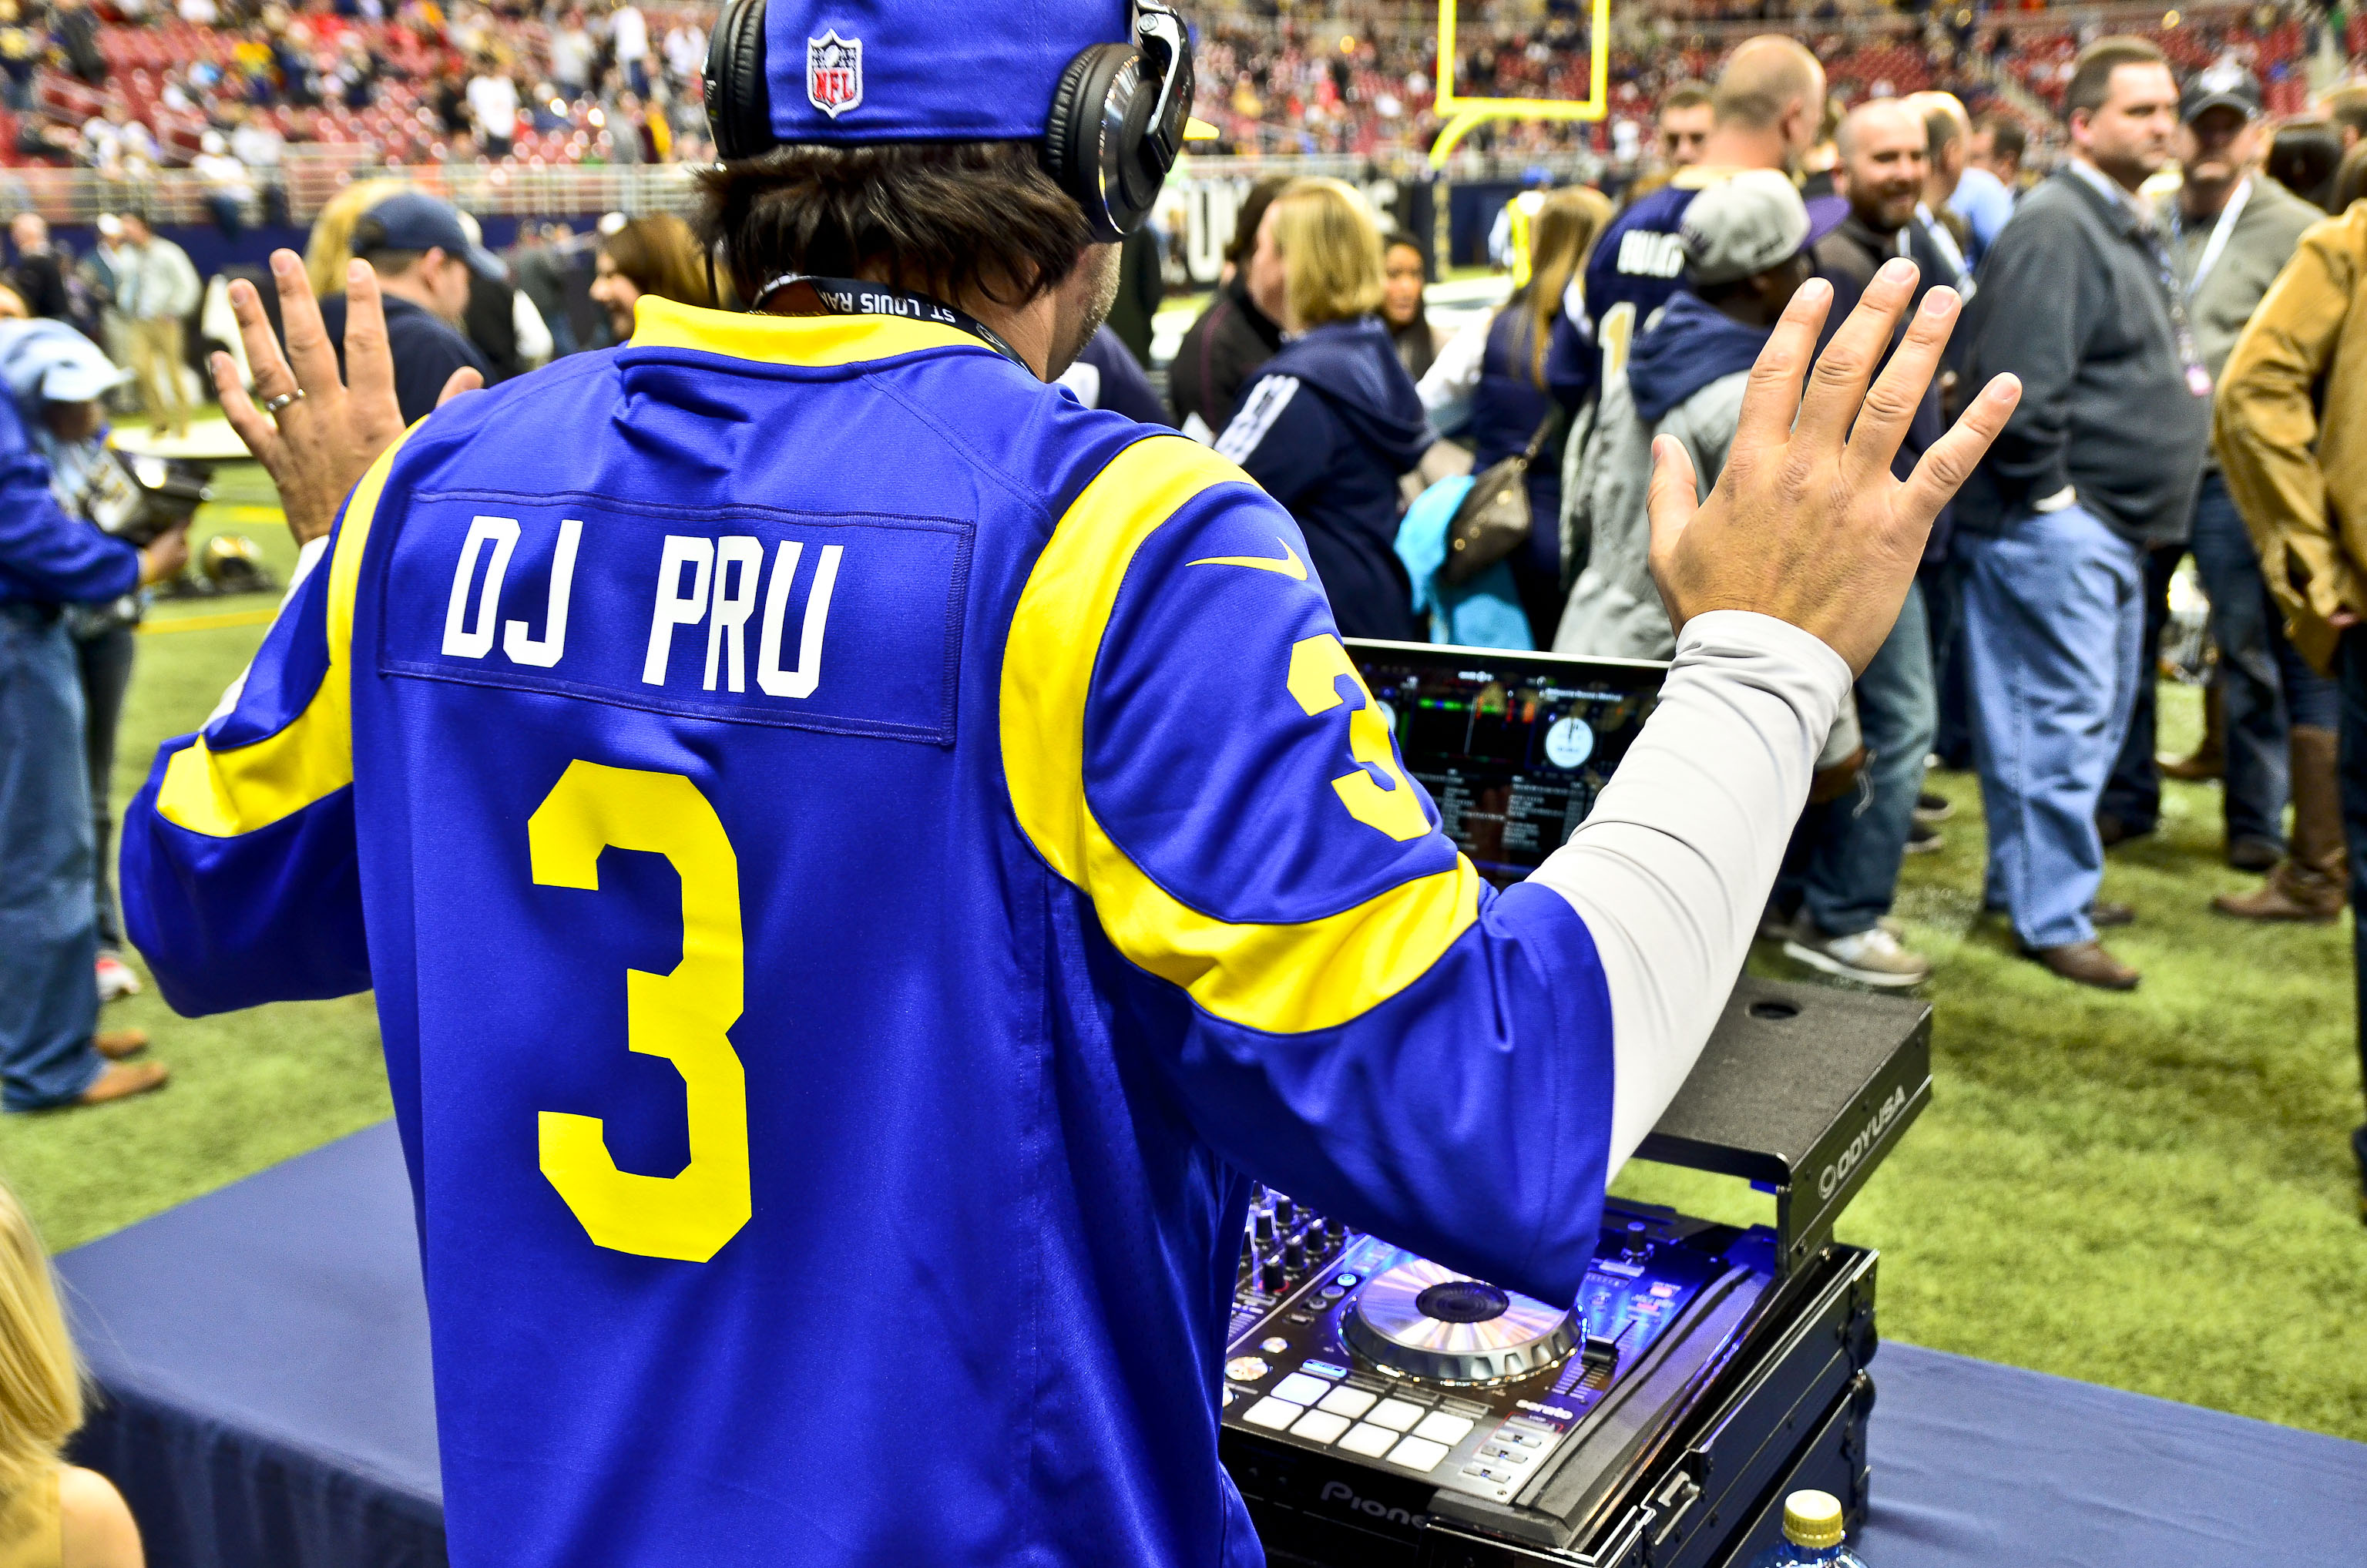 DjPRU St. Louis Rams Throwback Jersey 2013